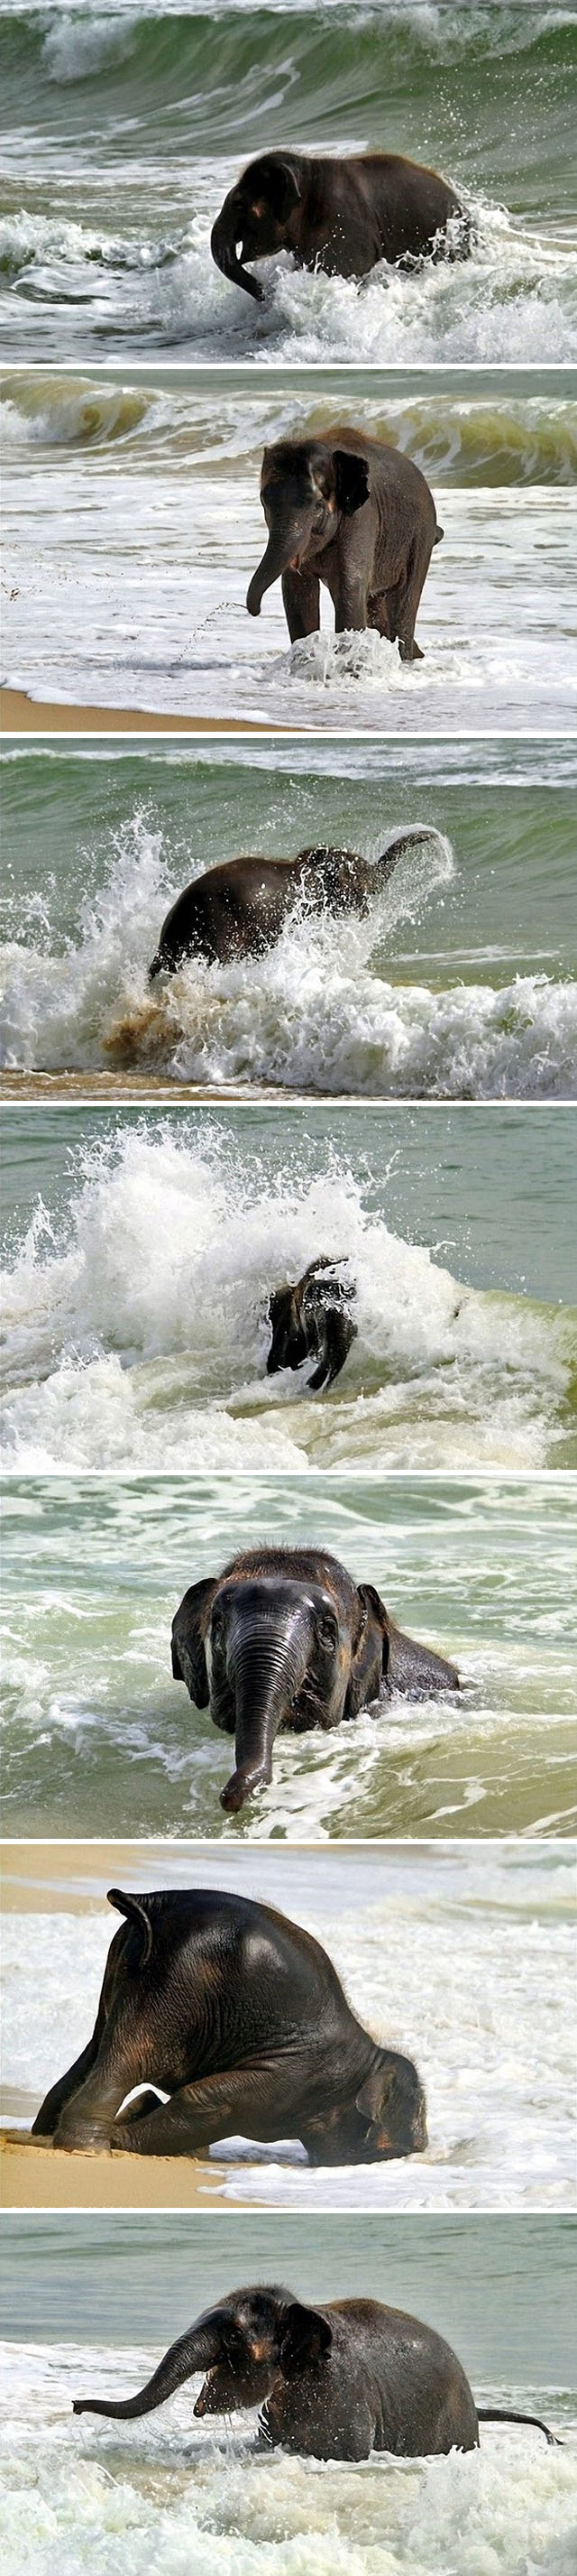 baby elephant at the beach